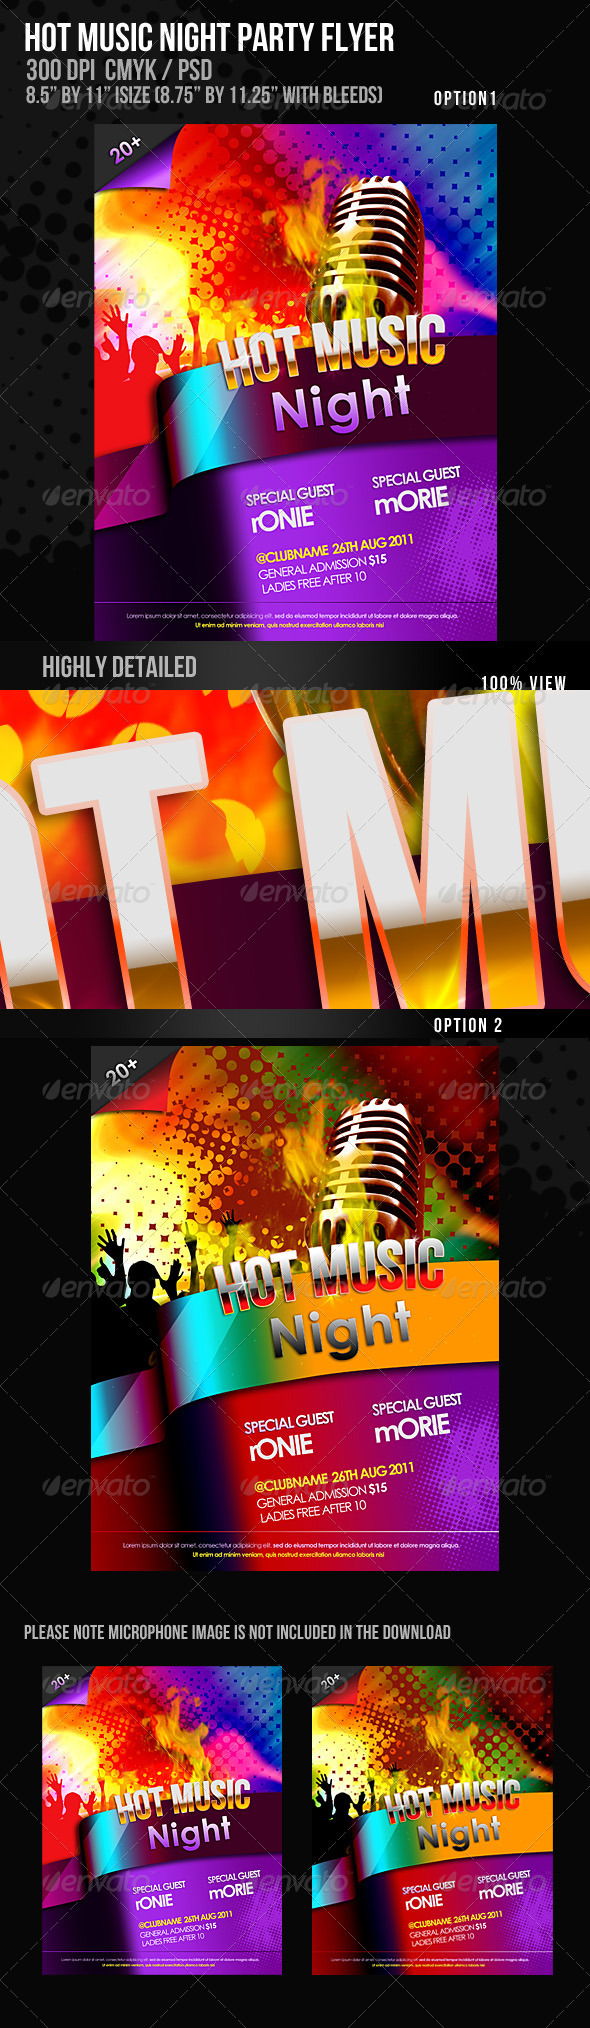 Hot Music Night Flyer - Clubs & Parties Events